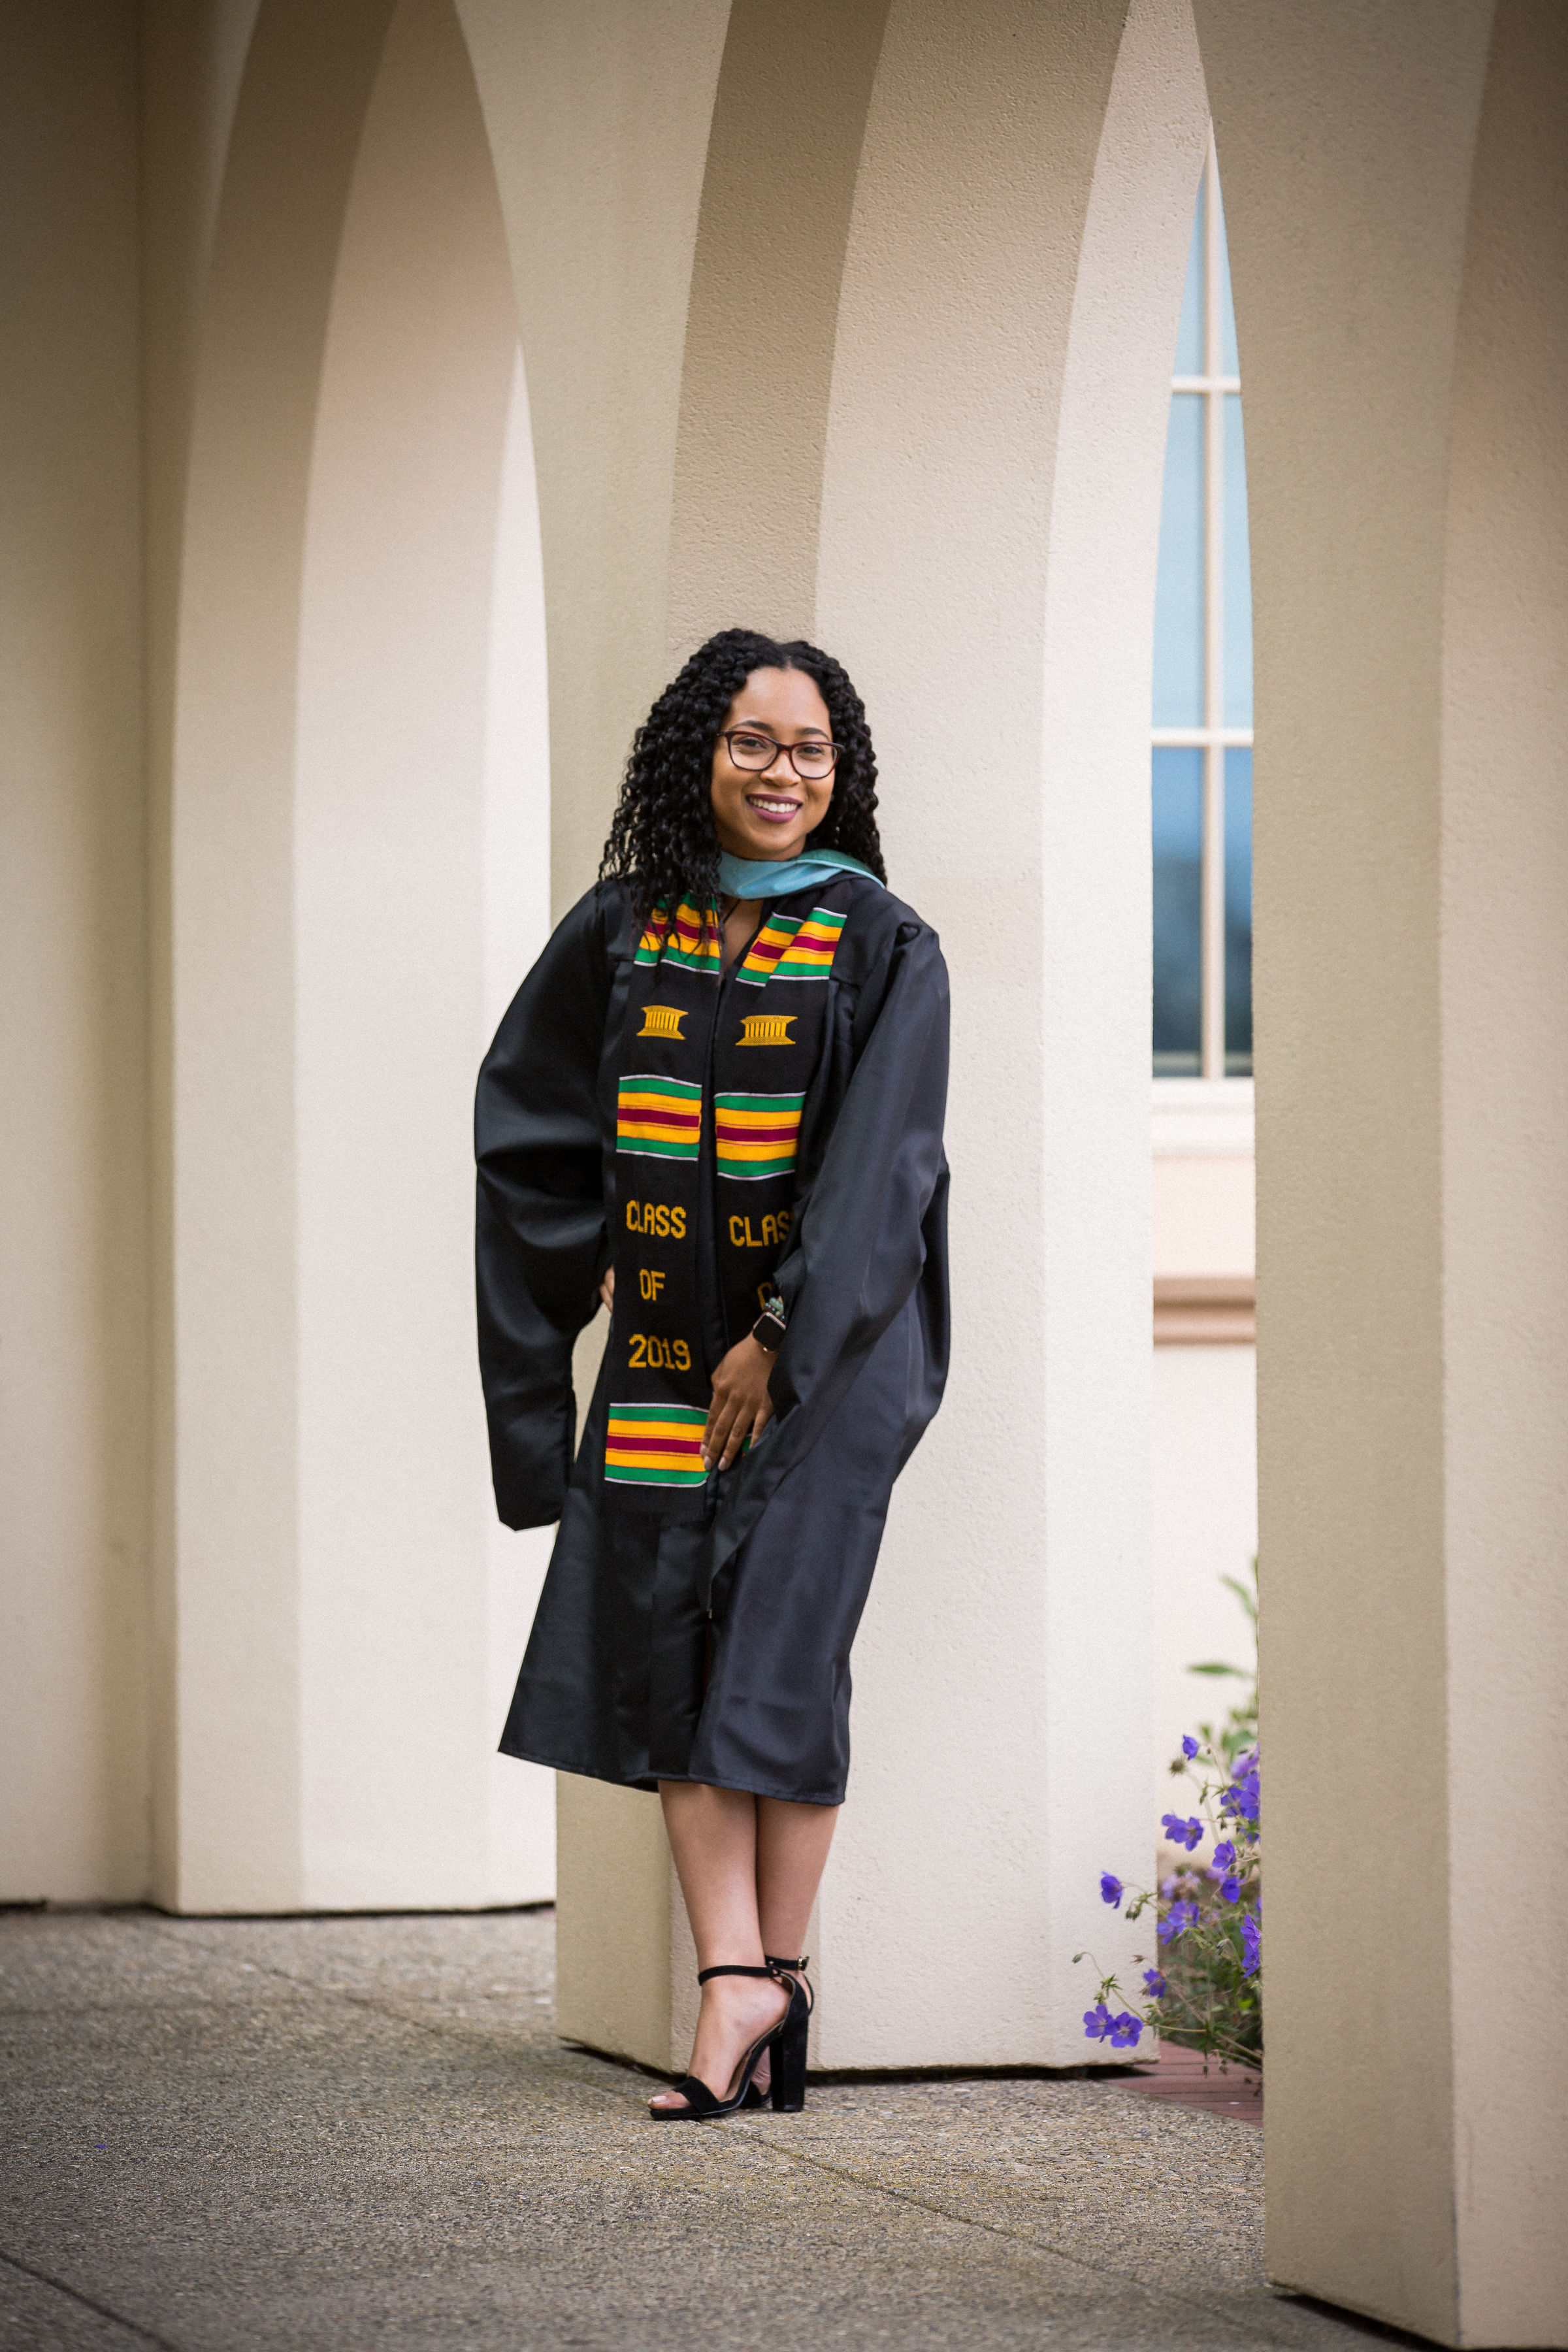 Charlie Kaine Photography | Graduation Portrait